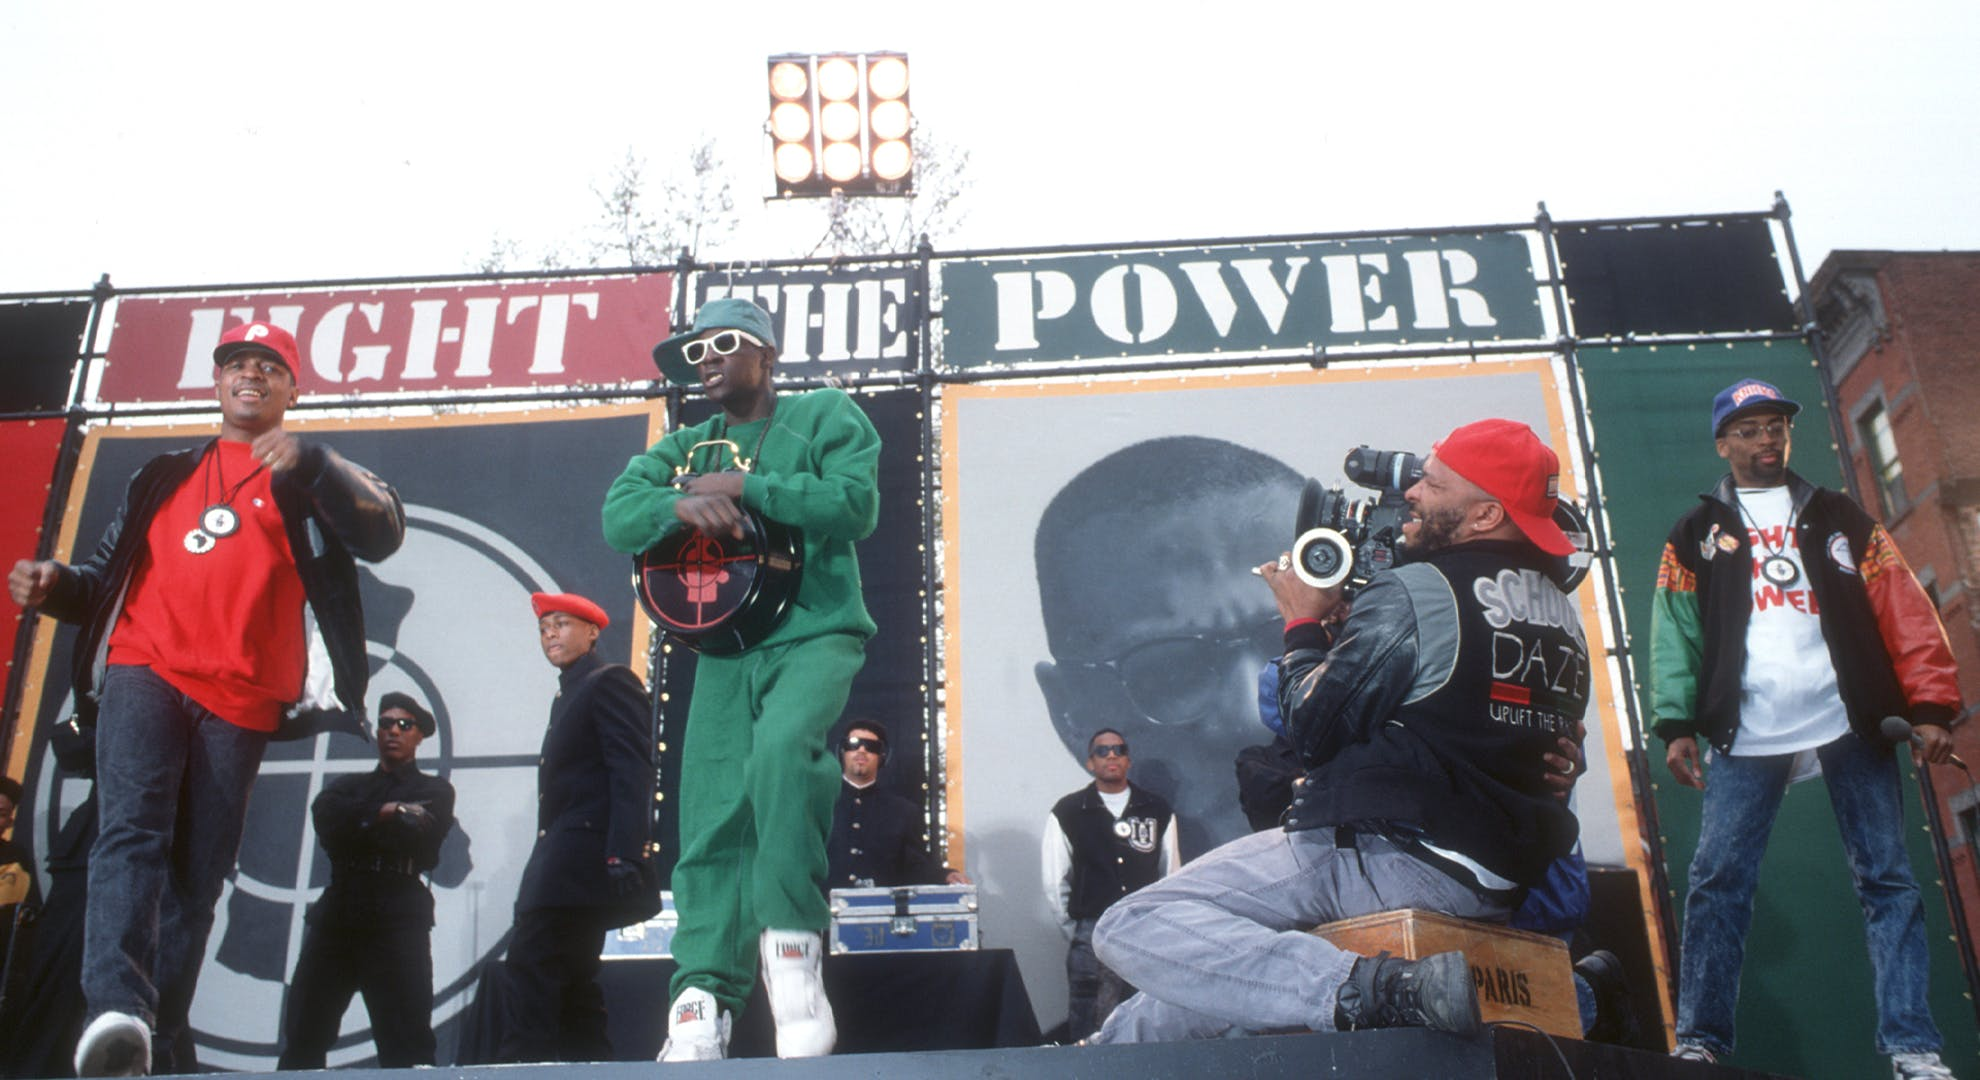 Rapper Flavor Flav, director Spike Lee and Chuck D of the rap group Public Enemy film a video for their song 'Fight The Power' directed by Spike Lee in 1989 in New York, New York.